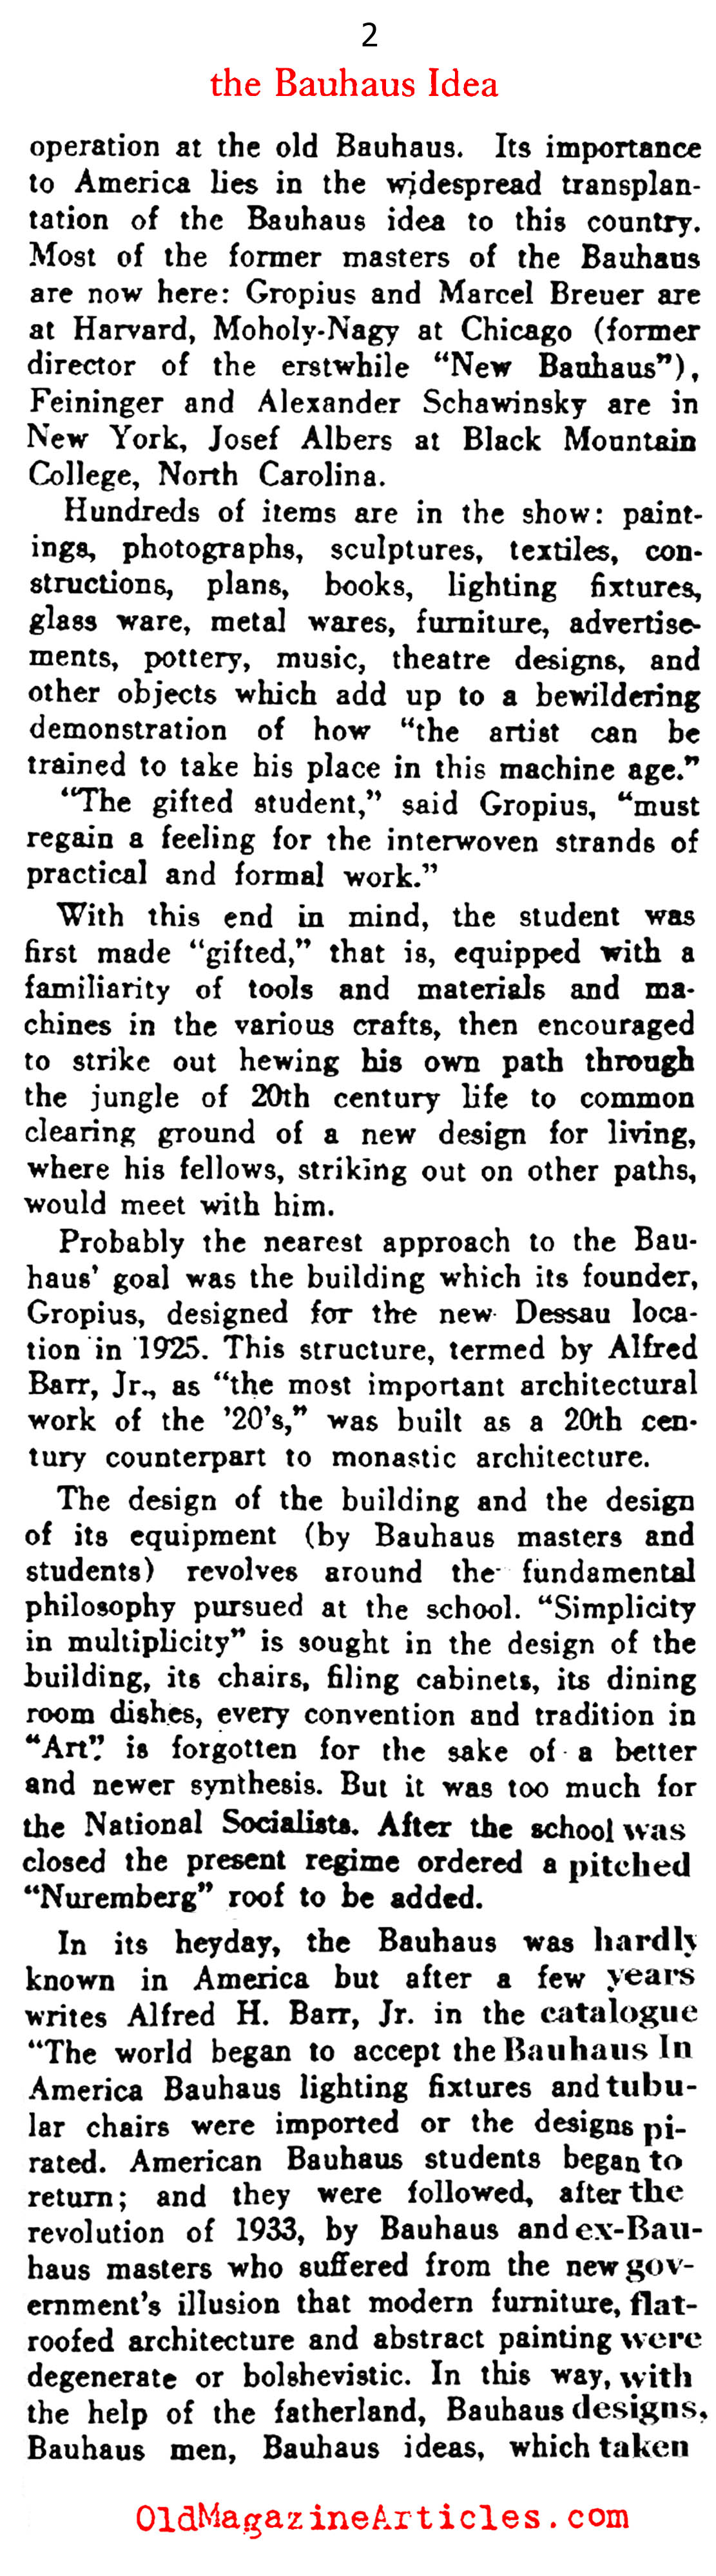 The Bauhaus Exhibit at the Museum of Modern Art  (Art Digest, 1938)